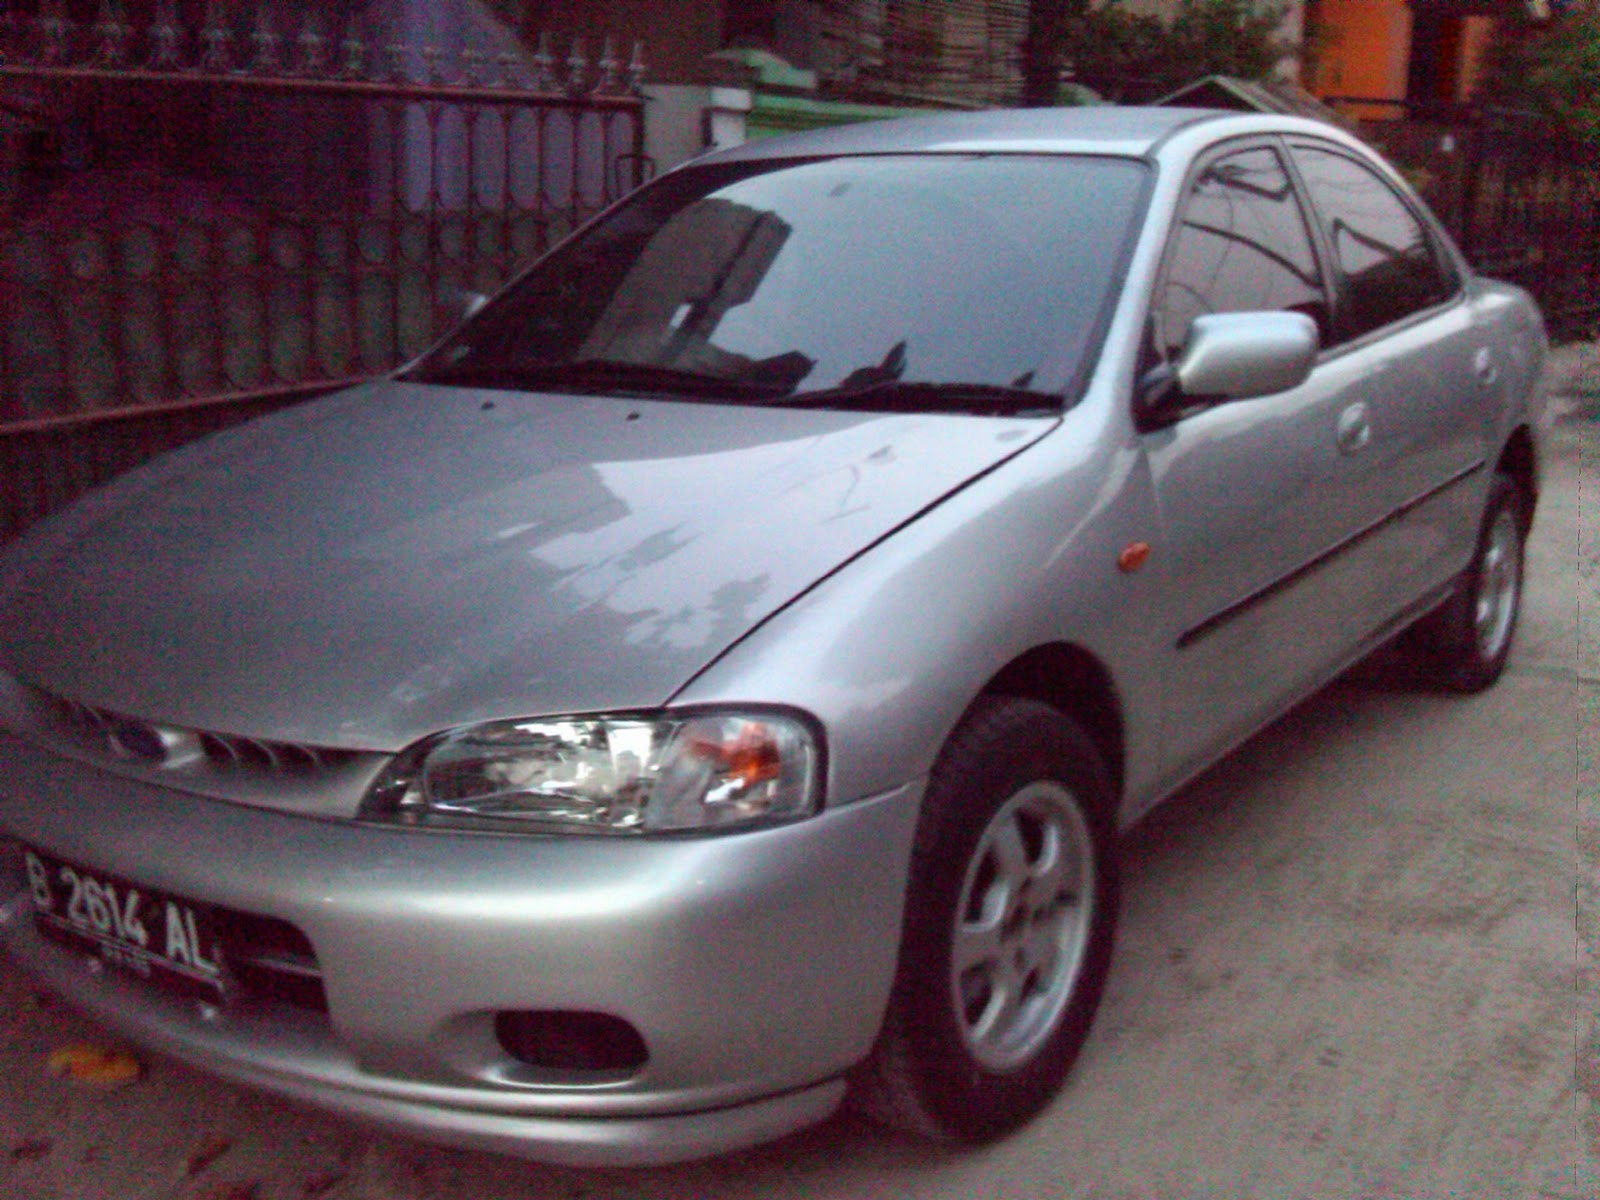 ford laser tahun 1995 with Wts Jual Murah Mobil Sedan Ford Laser on Jual Ford Laser 1995 Istimewa Terawat 18175 besides Ford Laser 7826 furthermore Kumpulan Modifikasi Mobil Ford Laser moreover Wts Jual Murah Mobil Sedan Ford Laser as well Ford laser m t in 101375.